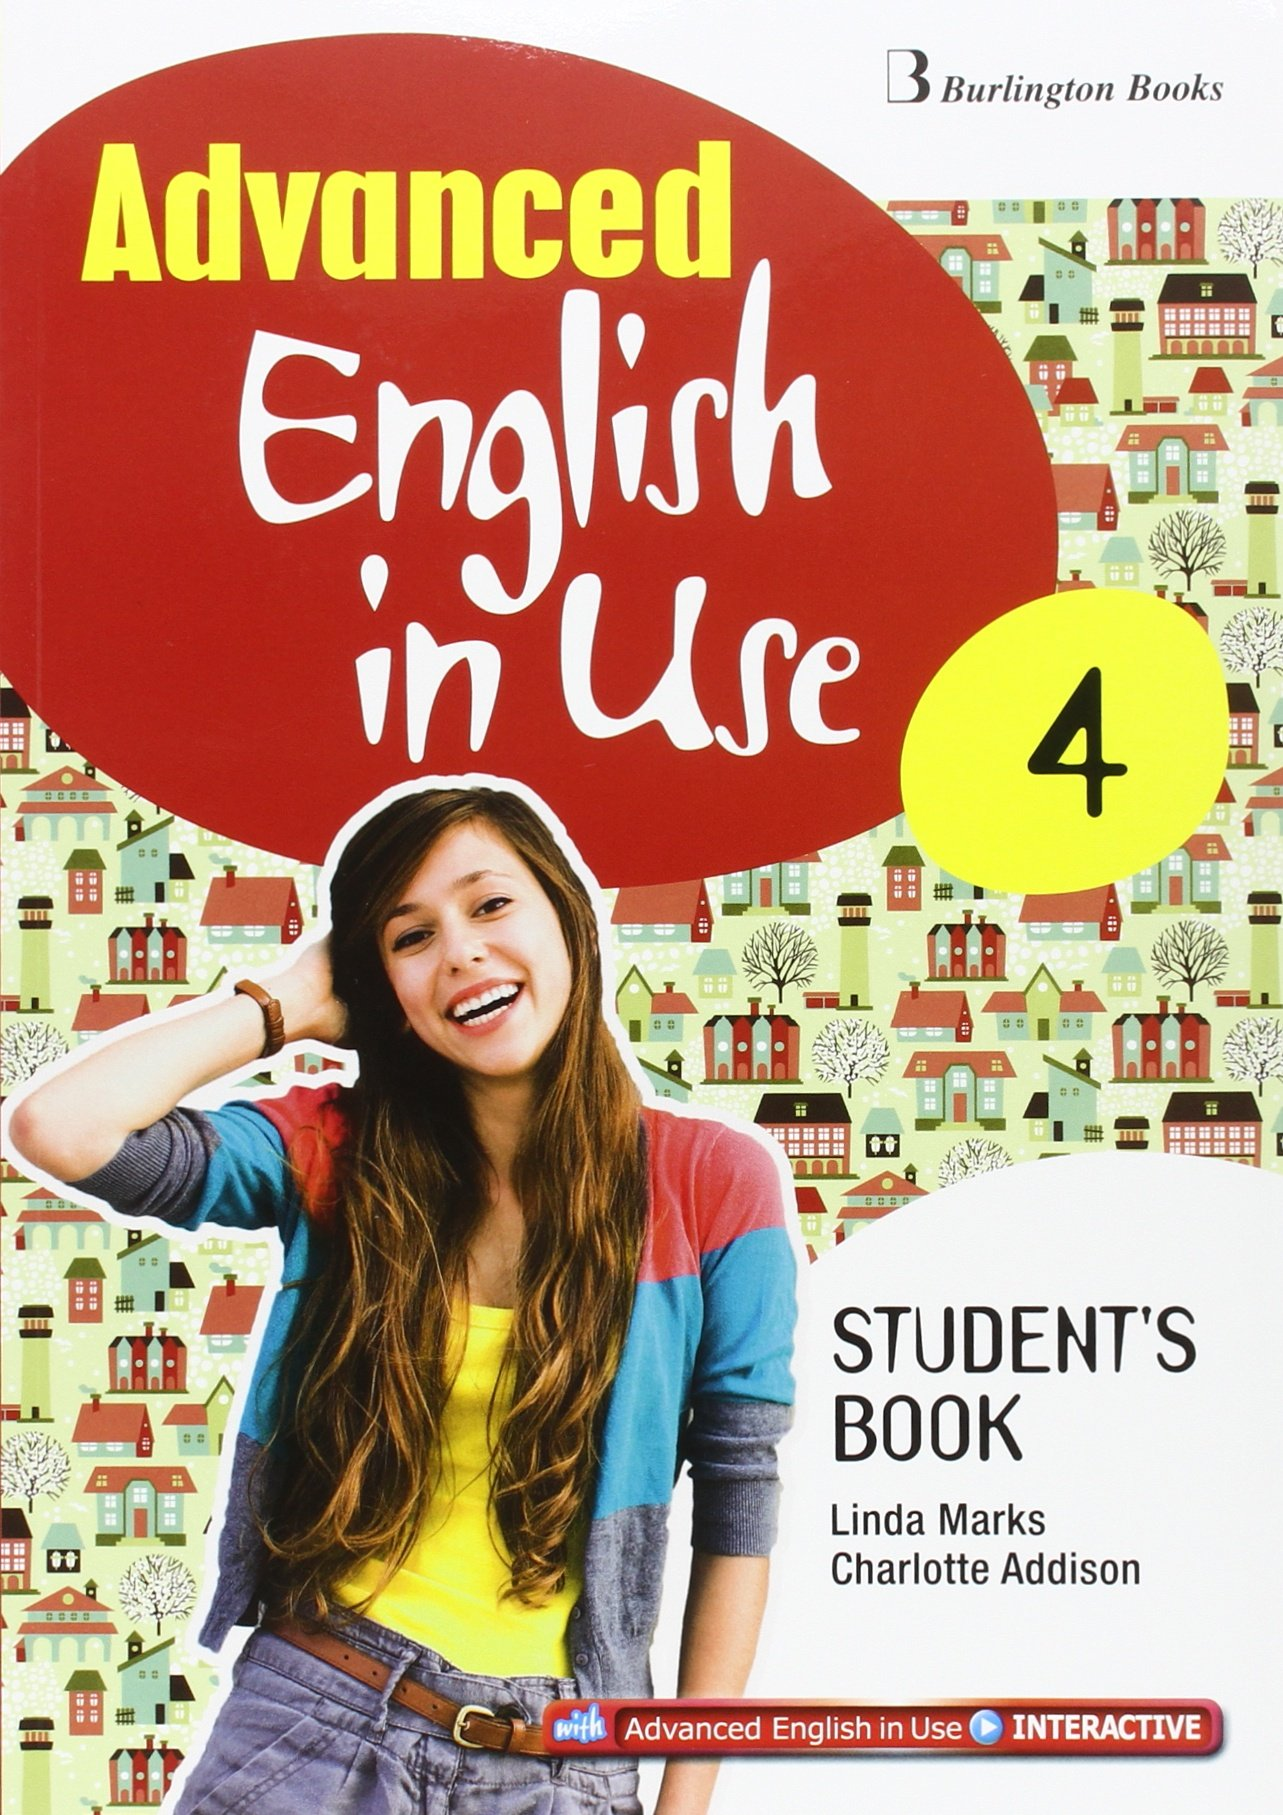 Advanced english in use, 4 ESO, Student's book Paperback – Jan 1 2016